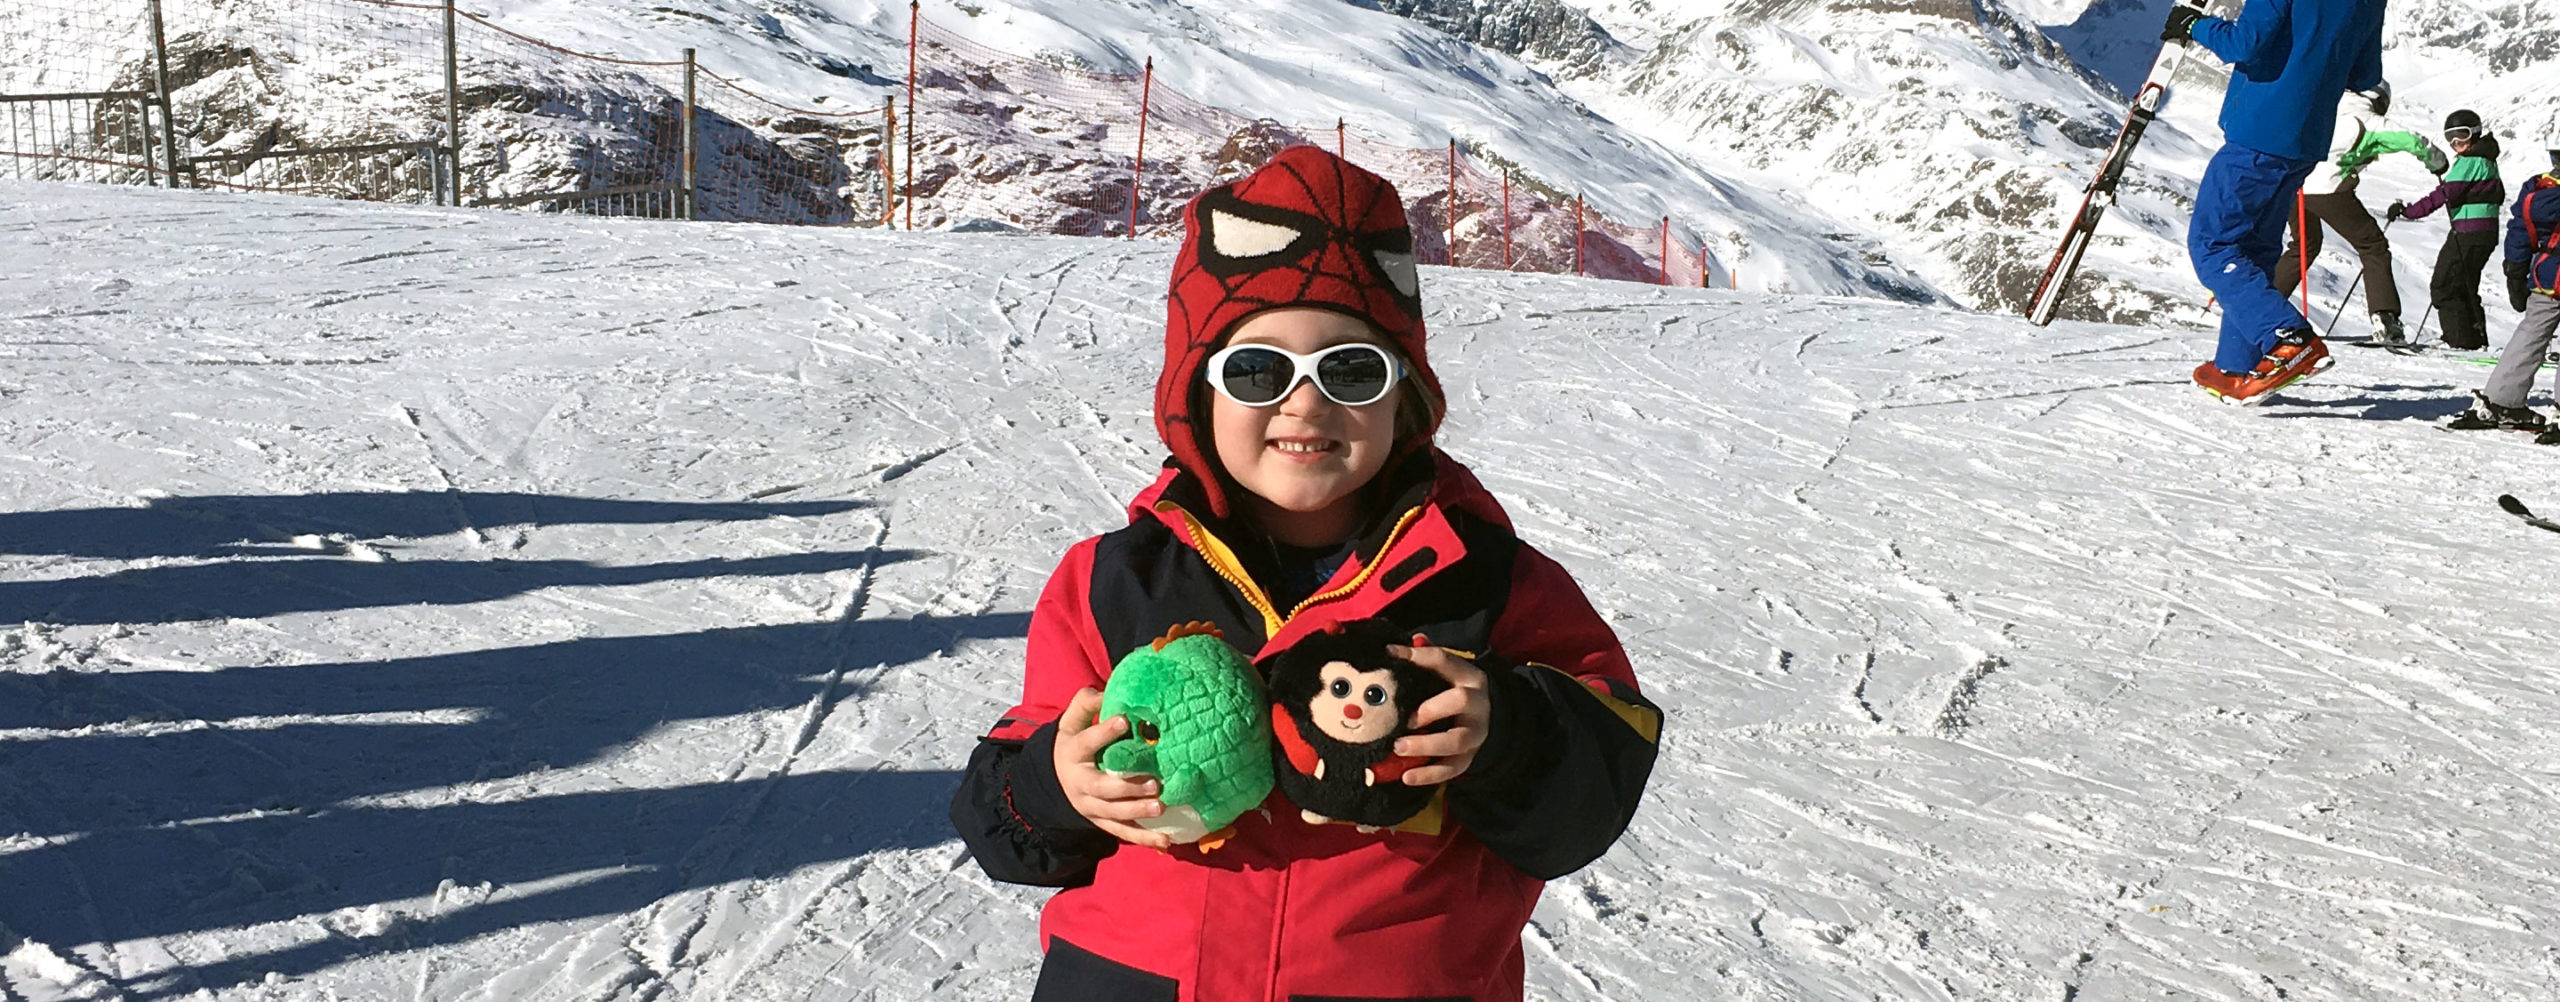 In front of the Matterhorn with cuddly toys